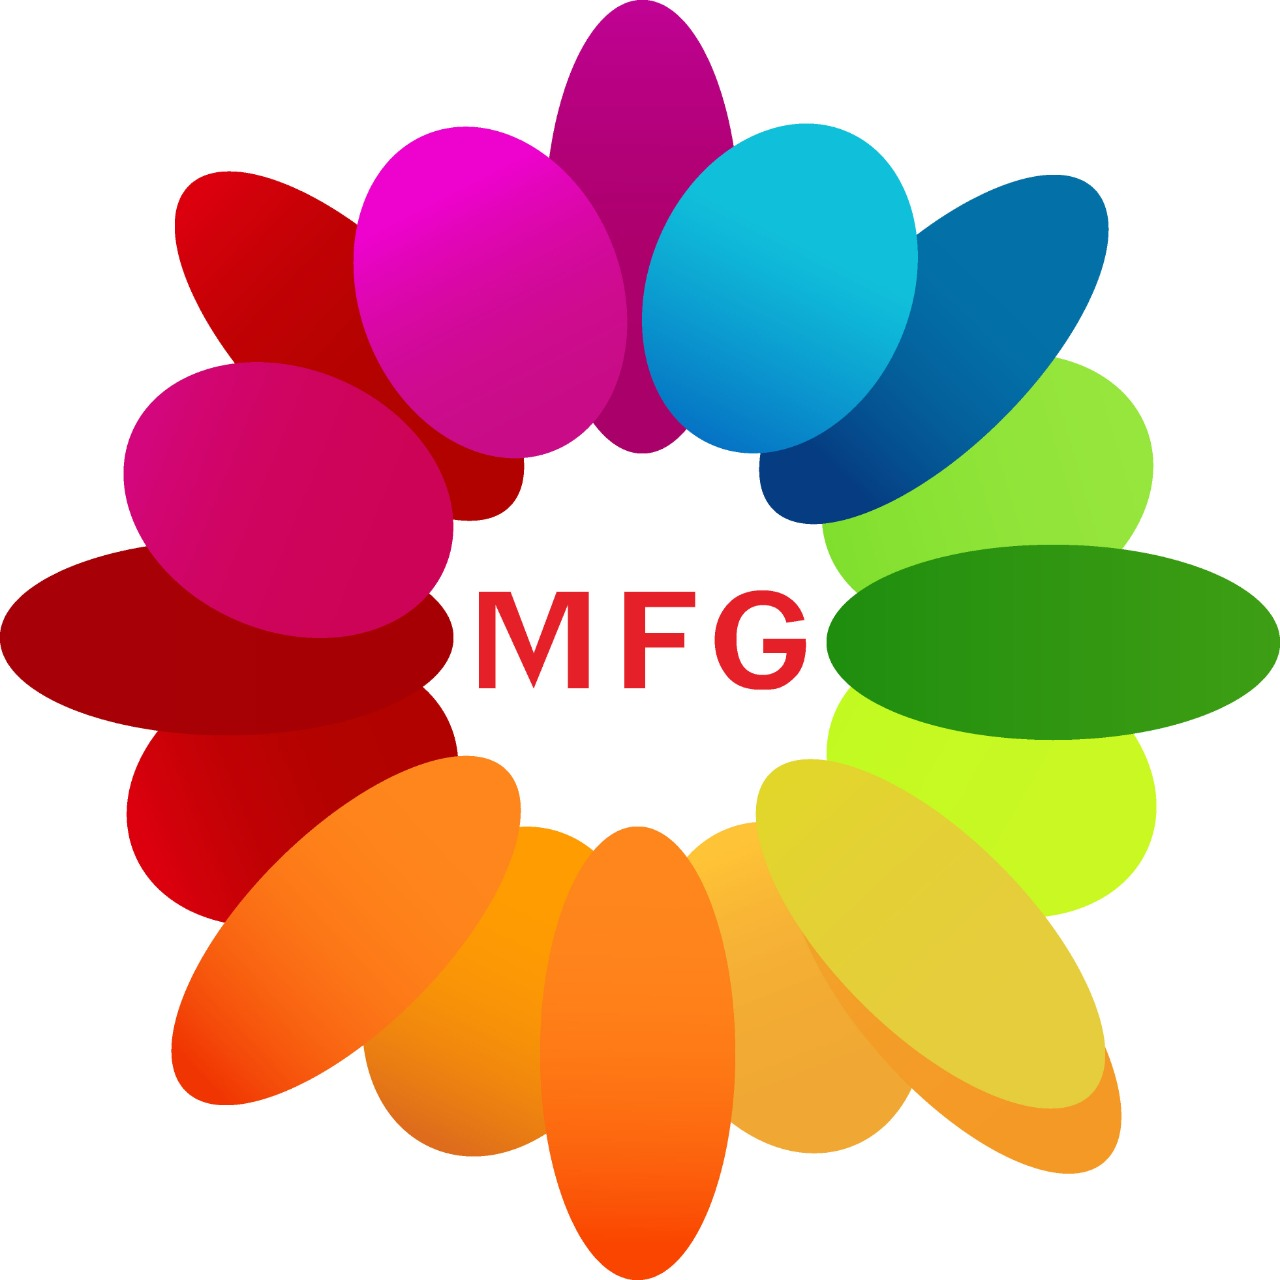 20 red carnations with 20 red roses arranged in vase